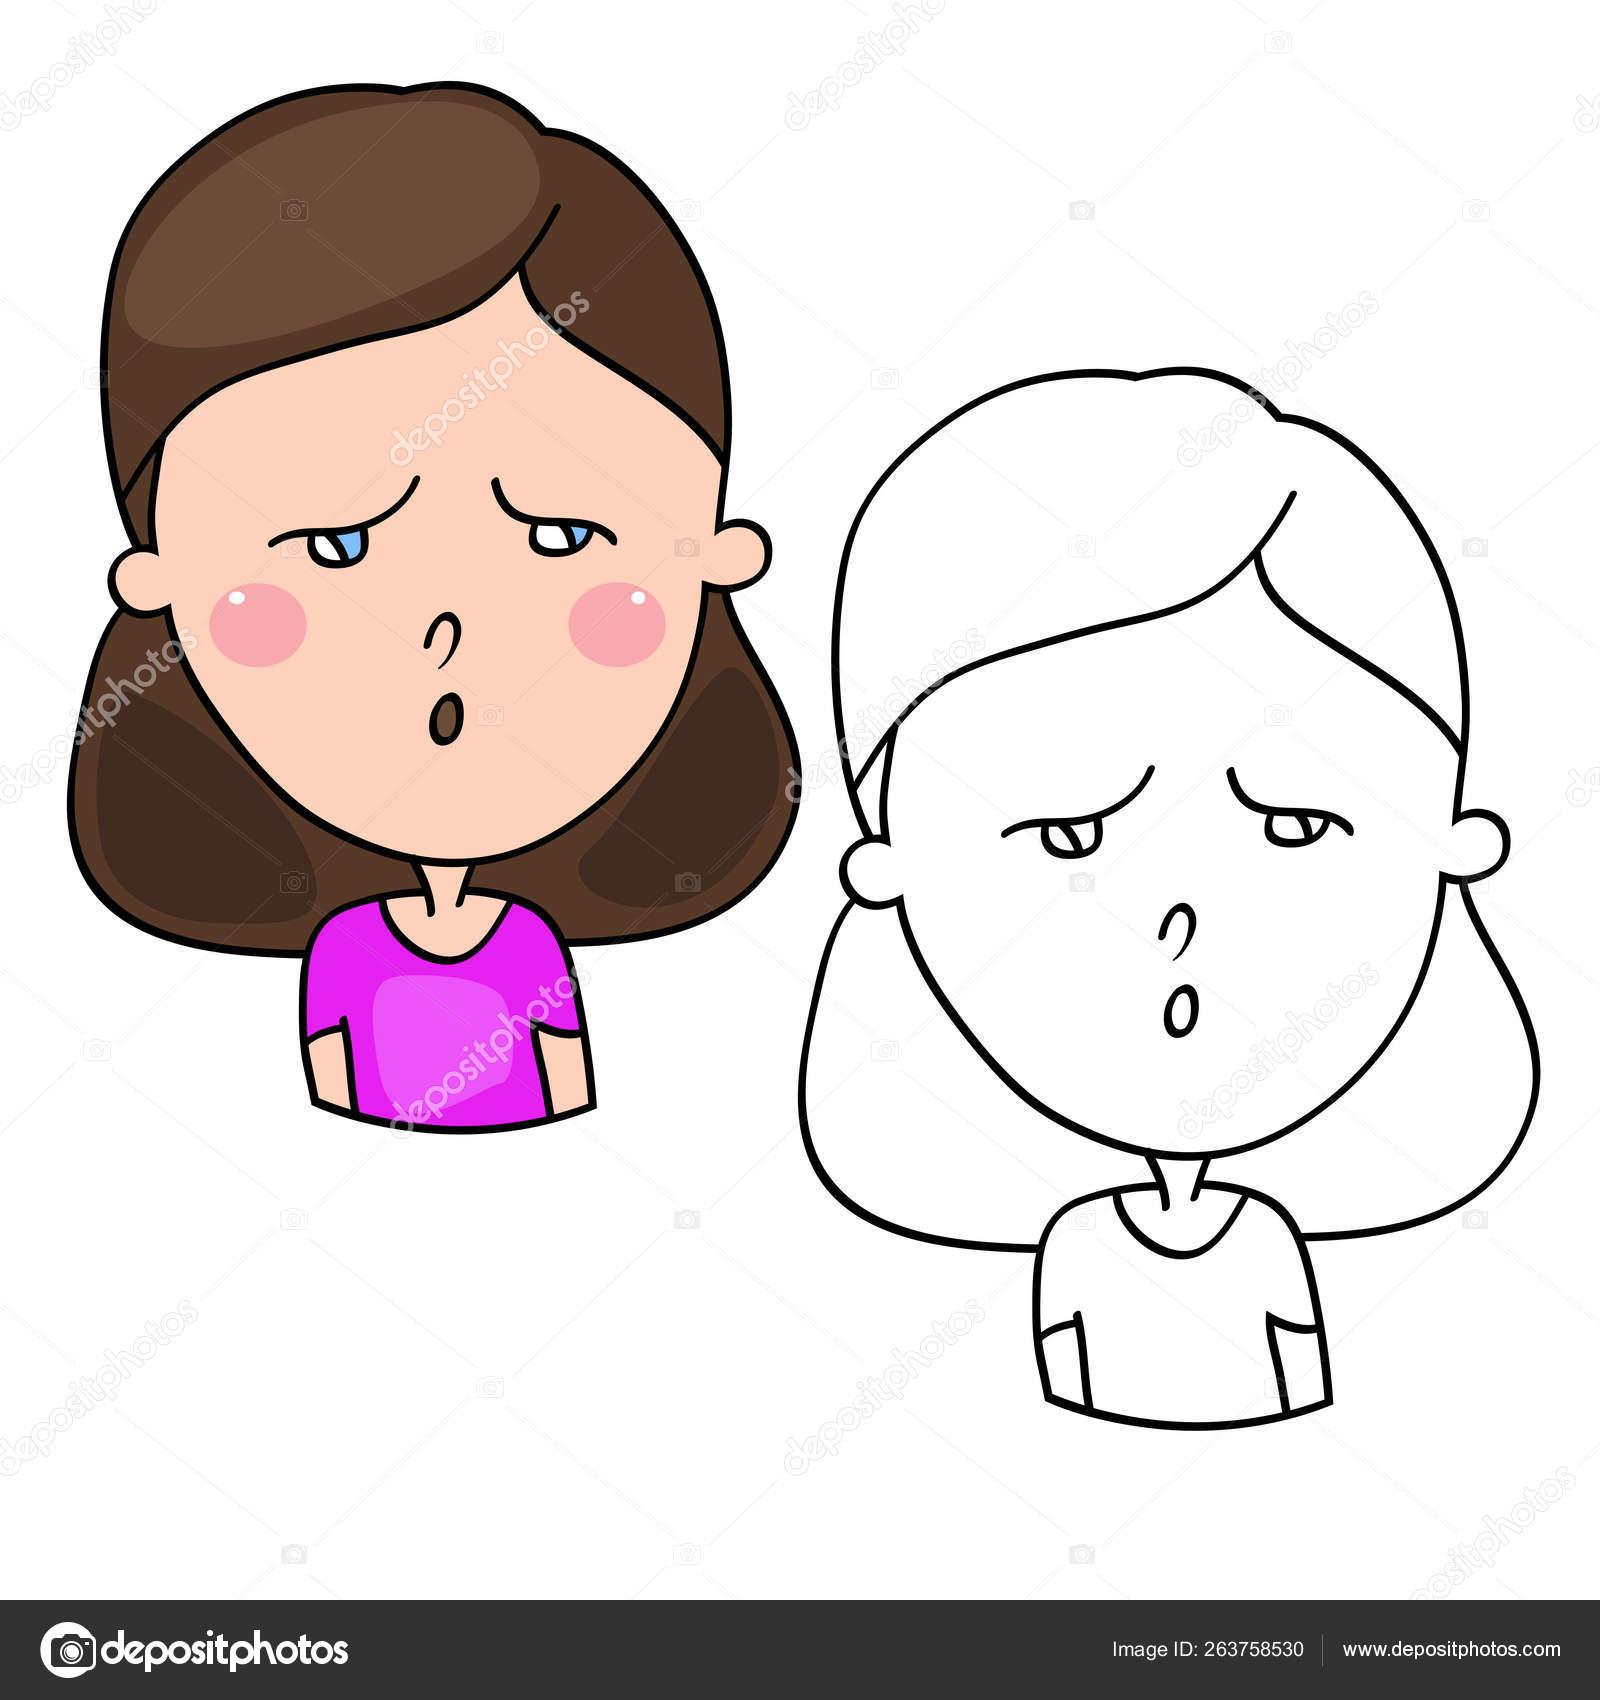 Funny Cartoon Characters Girls Expression Emotions Mood